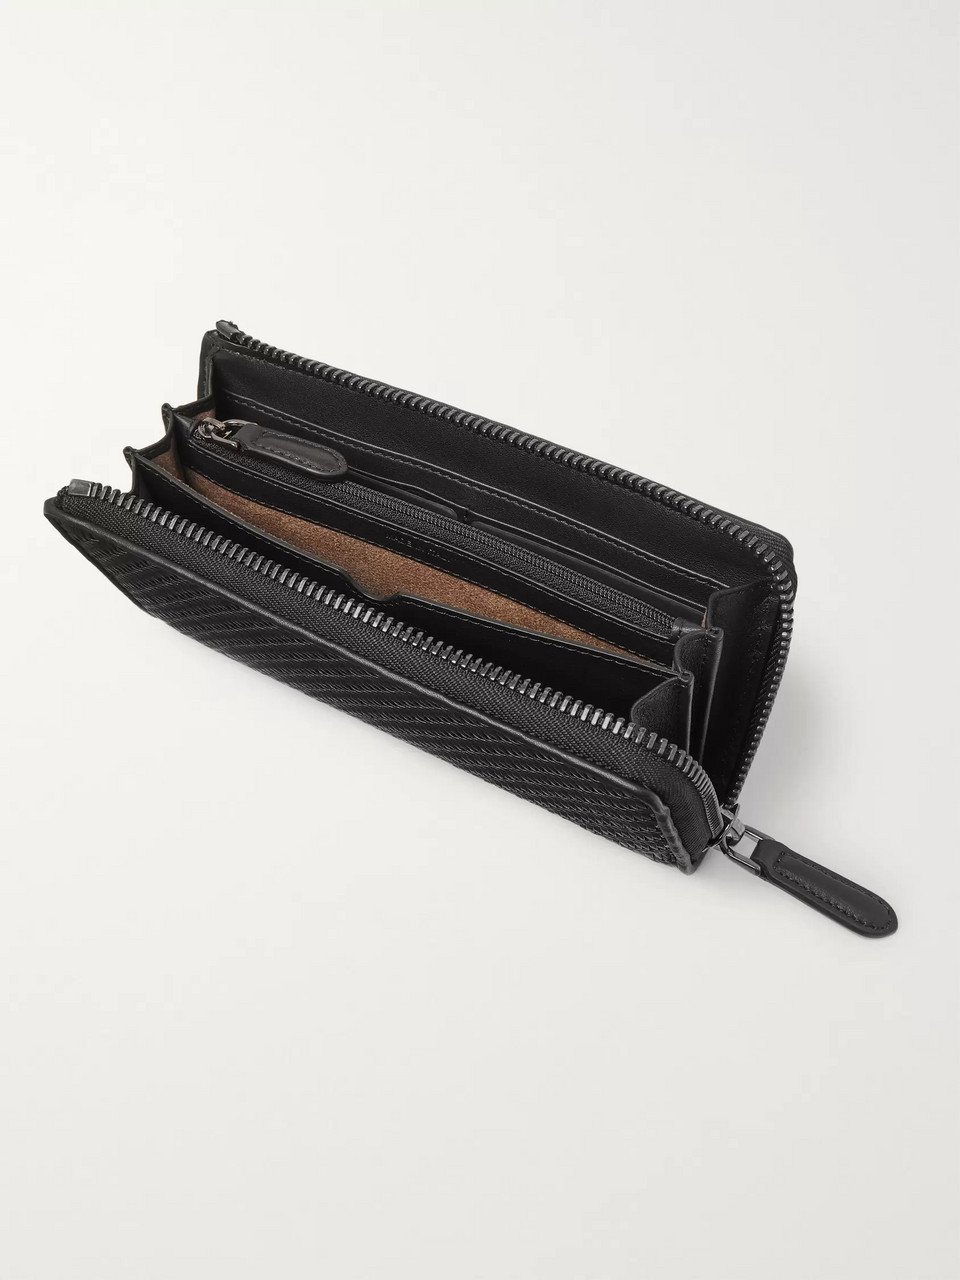 Ermenegildo Zegna Pelle Tessuta Leather Zip-Around Wallet